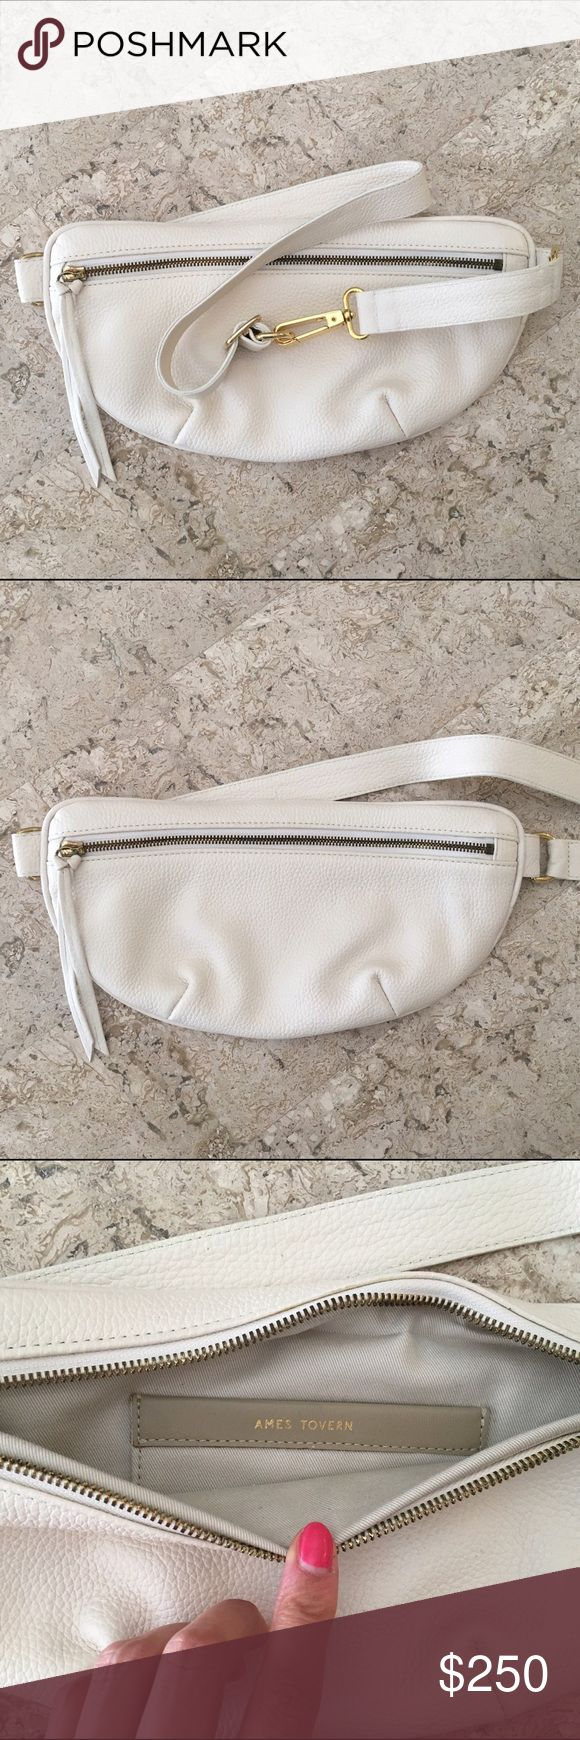 Ames Tovern Hip Bag White leather Ames Tovern fanny pack hip bag. Gold hardware and cream interior. Brand new never used. Comes with original dust bag. Fits anywhere from size 0-16. Ames Tovern Bags